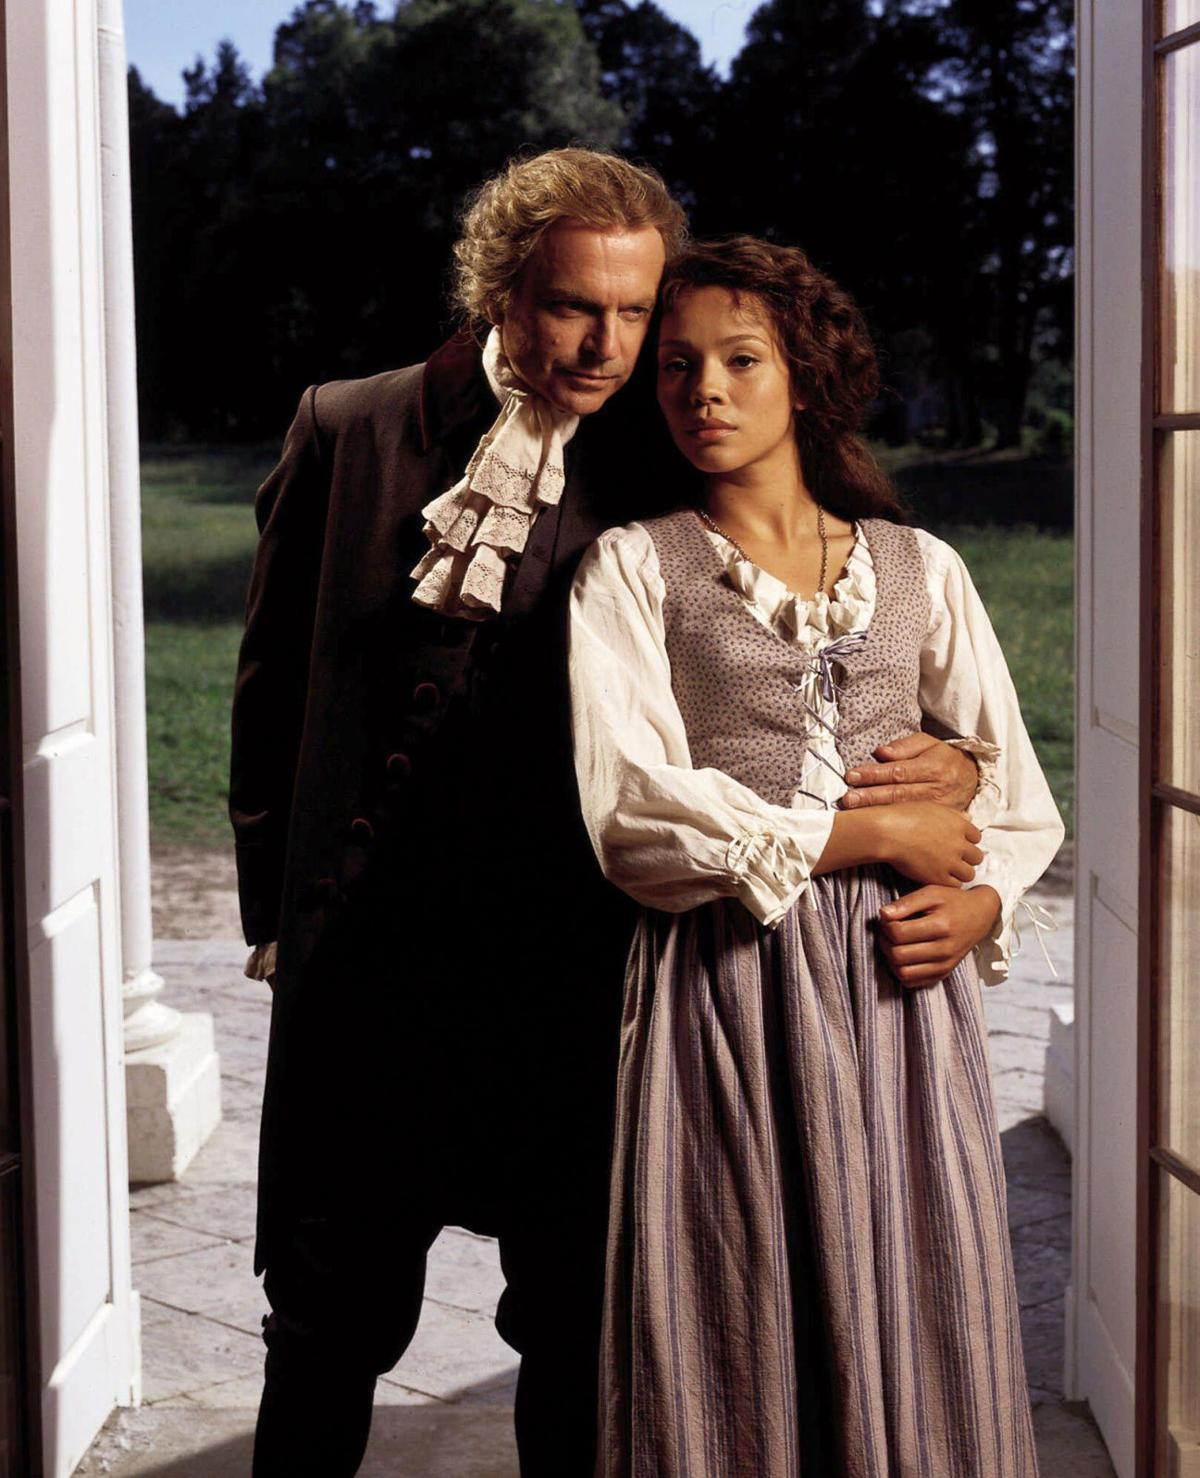 thomas jefferson and his mistress Claims that thomas jefferson fathered children by his slave sally hemings had circulated for almost 200 years when 1998 dna tests showed descendants of one hemings child were related to jefferson .